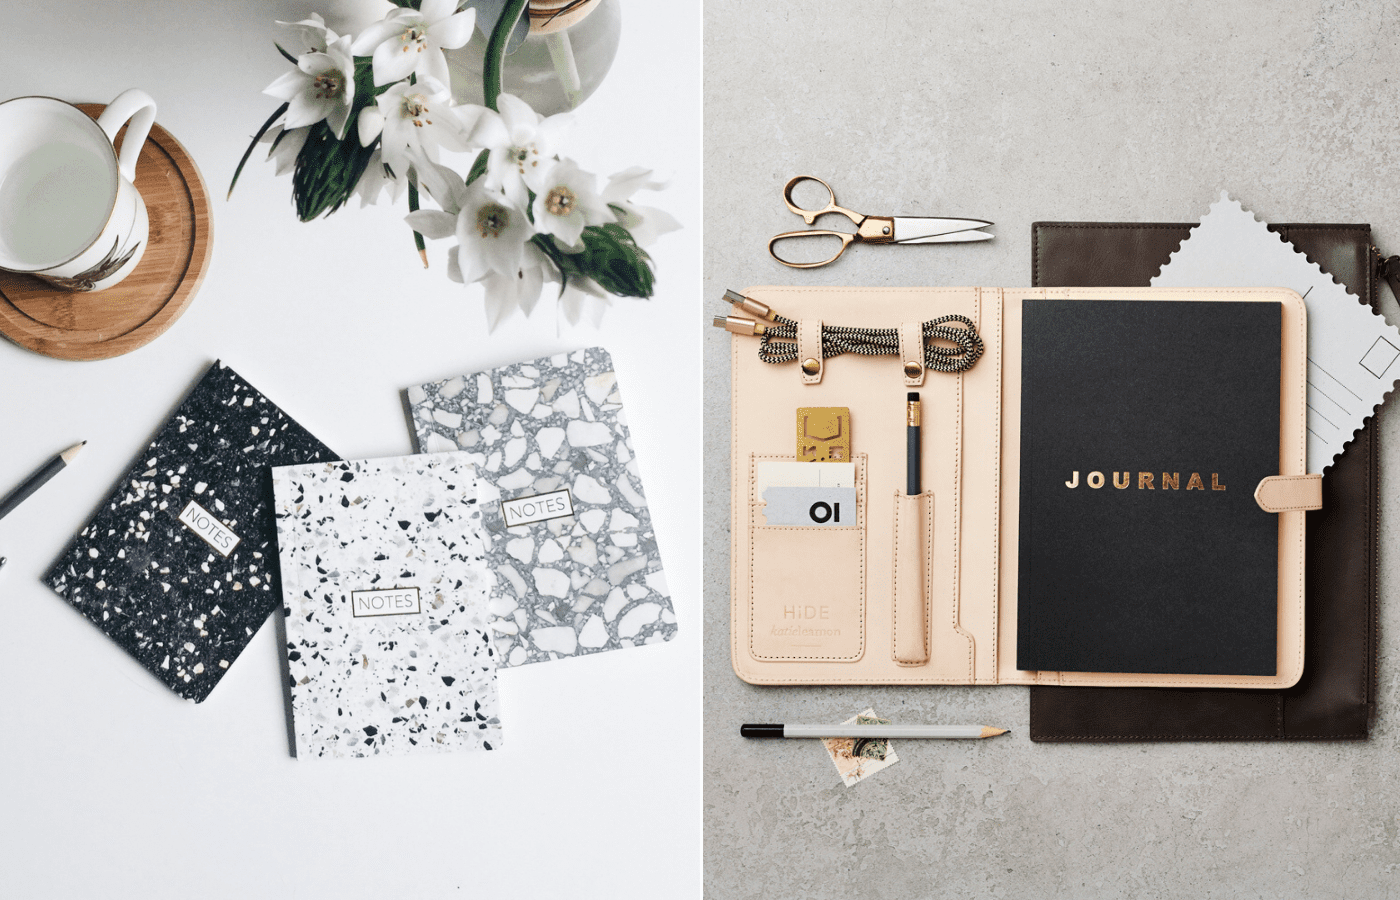 stationery and journals